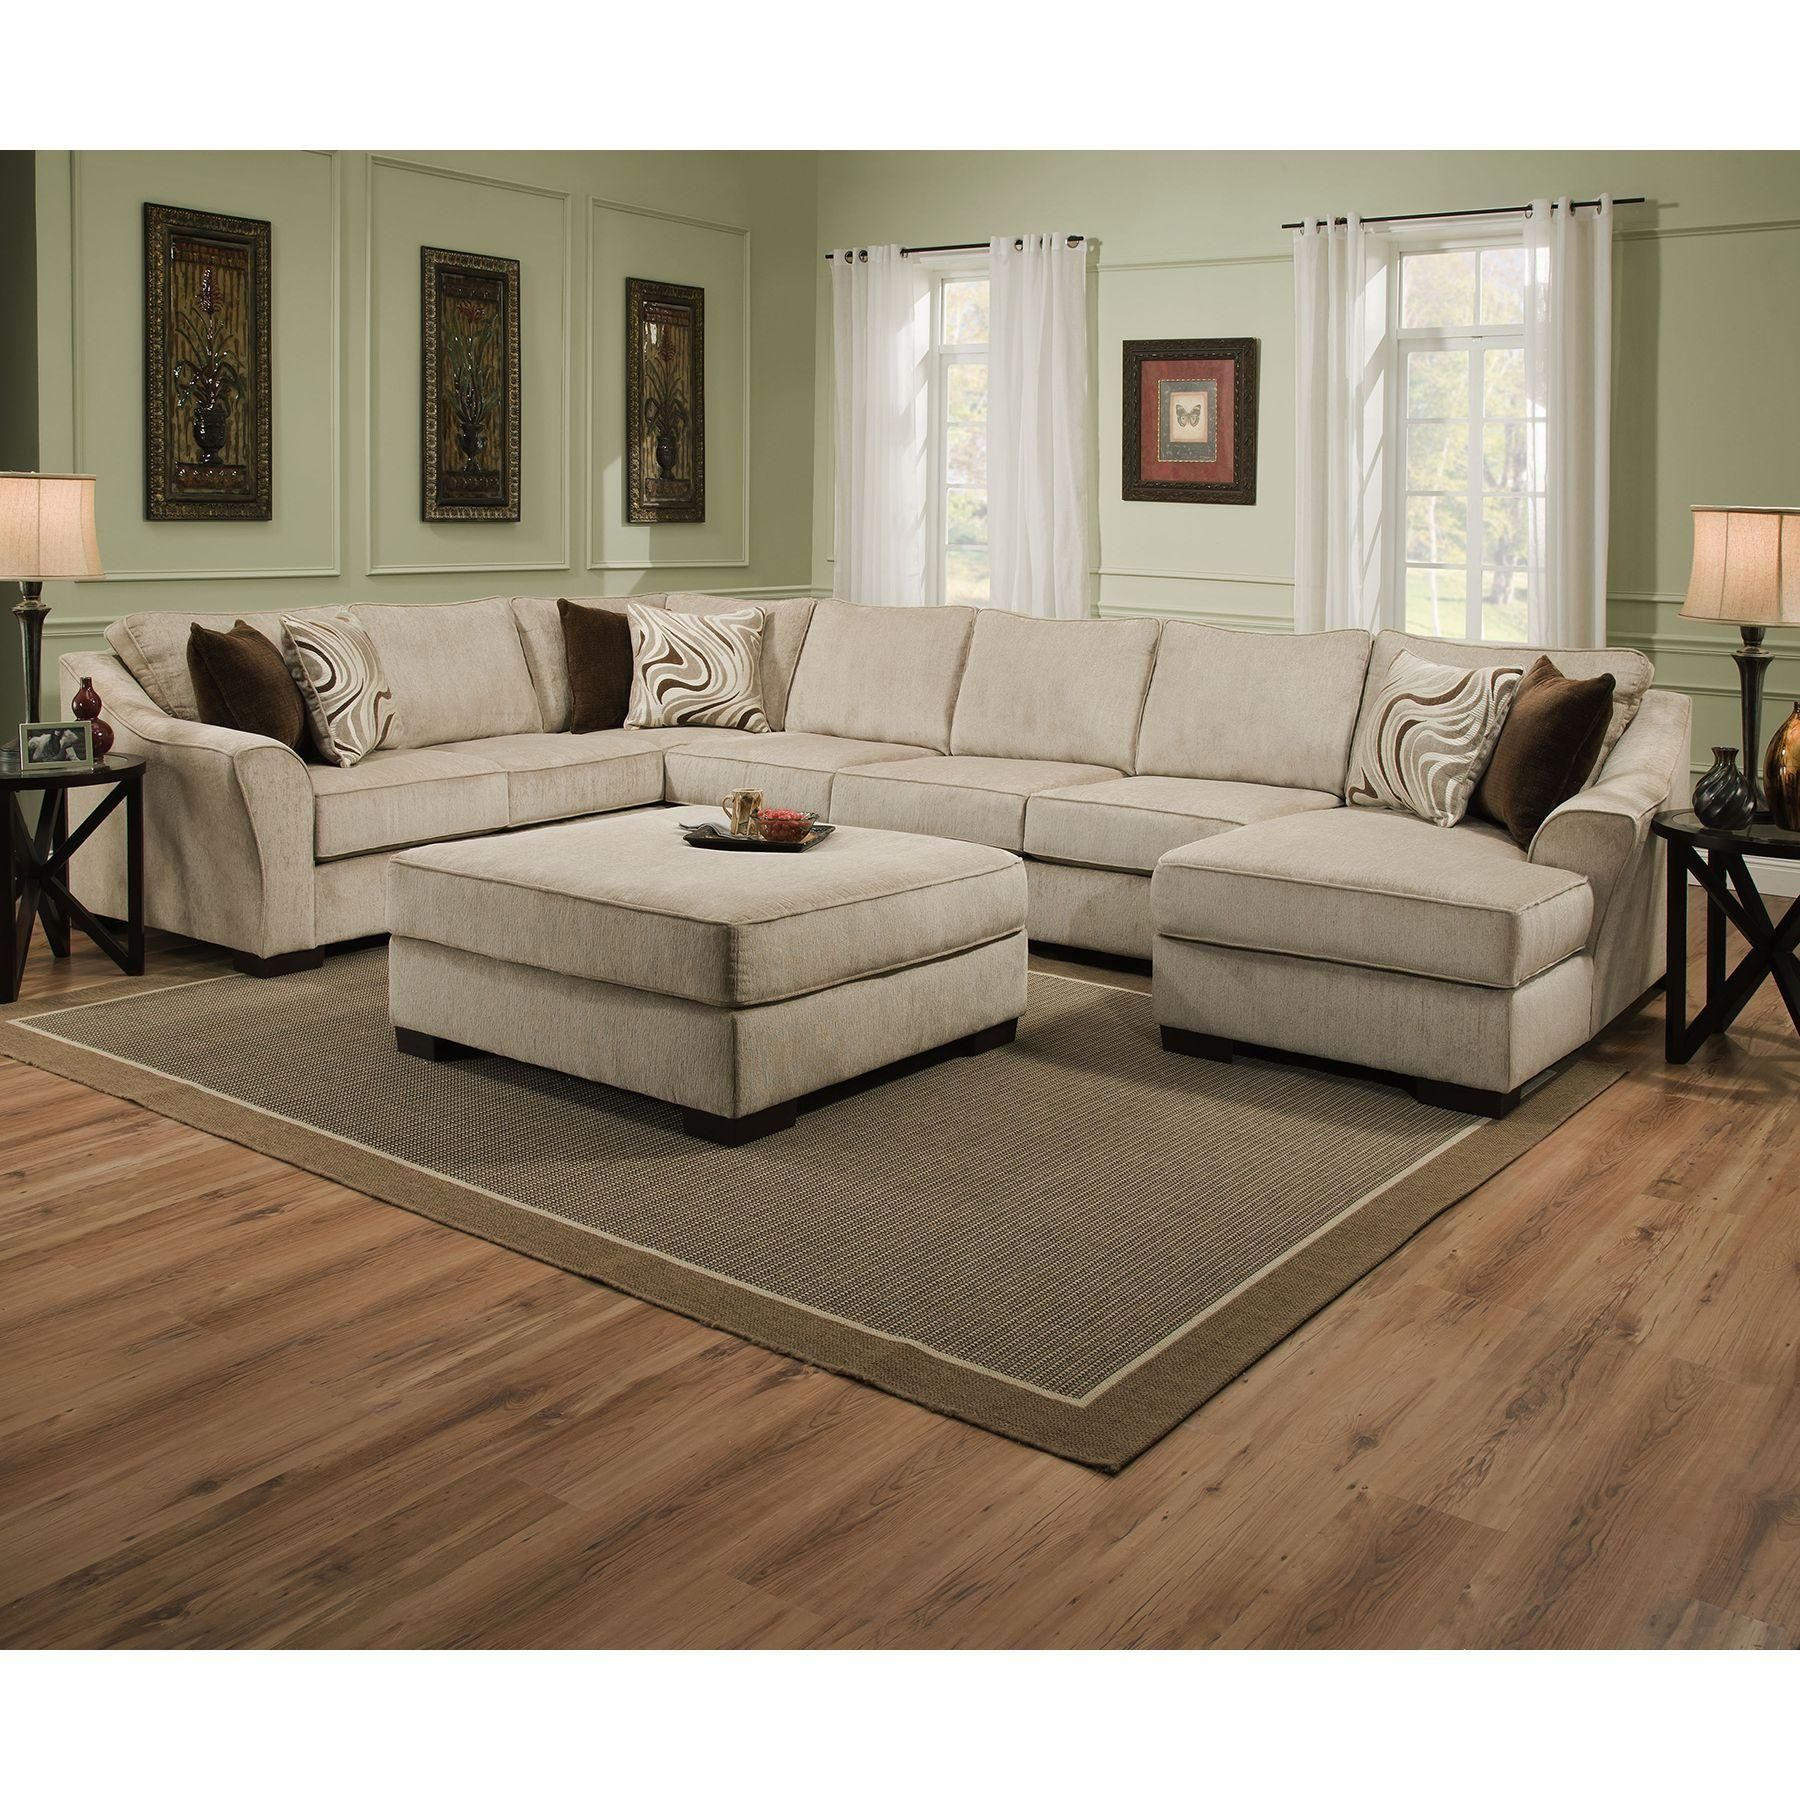 Furniture Comfy Sectional Sofa Huge Sofas Extra Throughout Large Comfortable